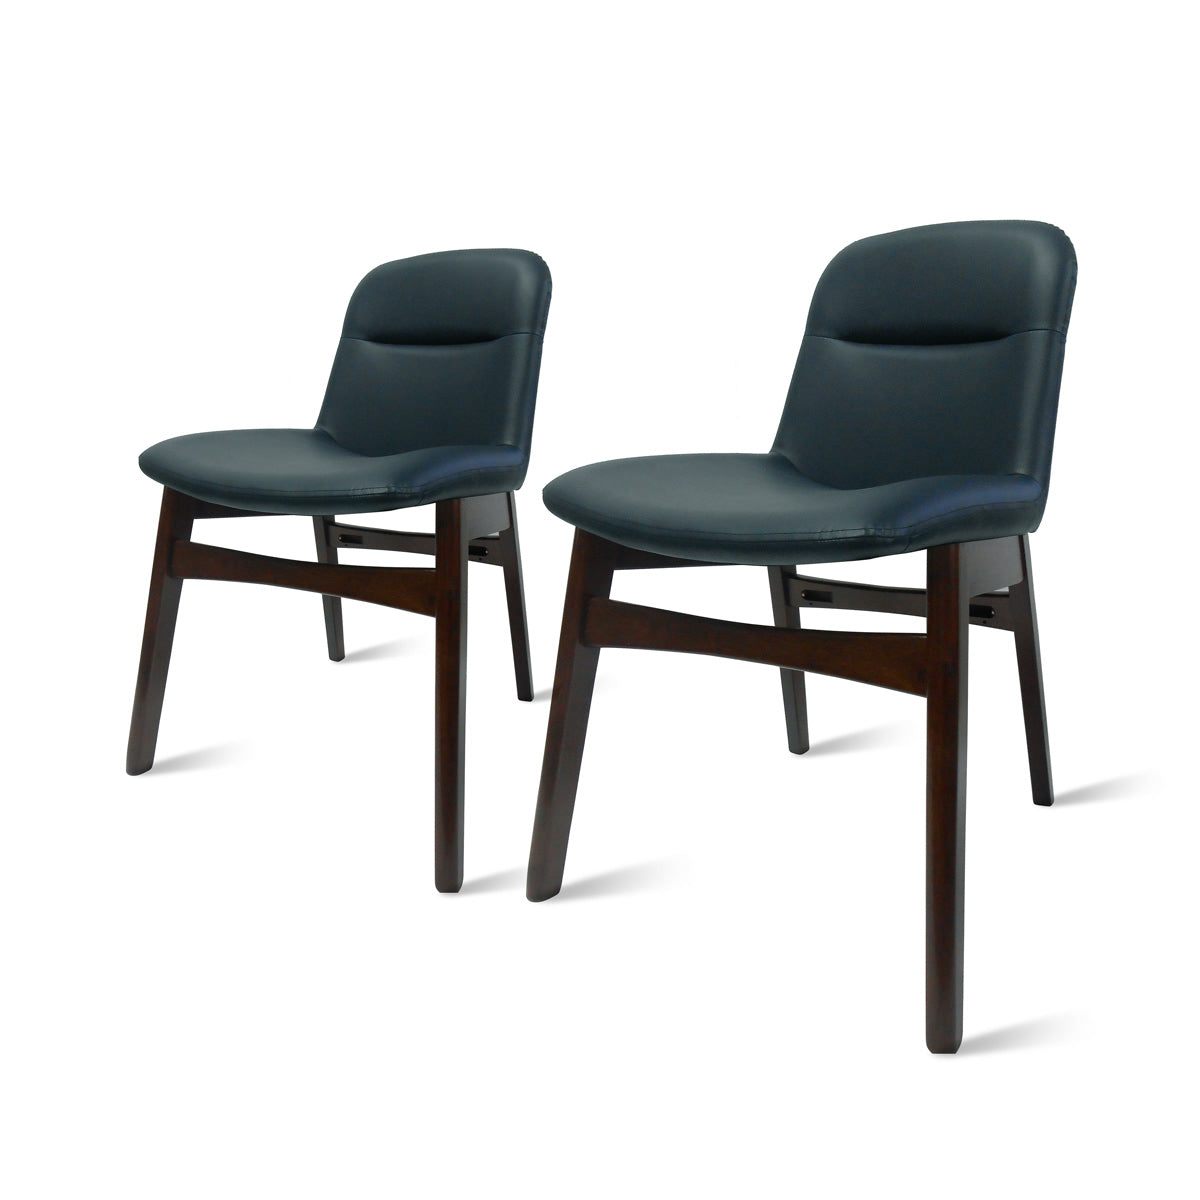 Dennis PU Leather Chair - Set of 2 by New Pacific Direct - 1380003-403